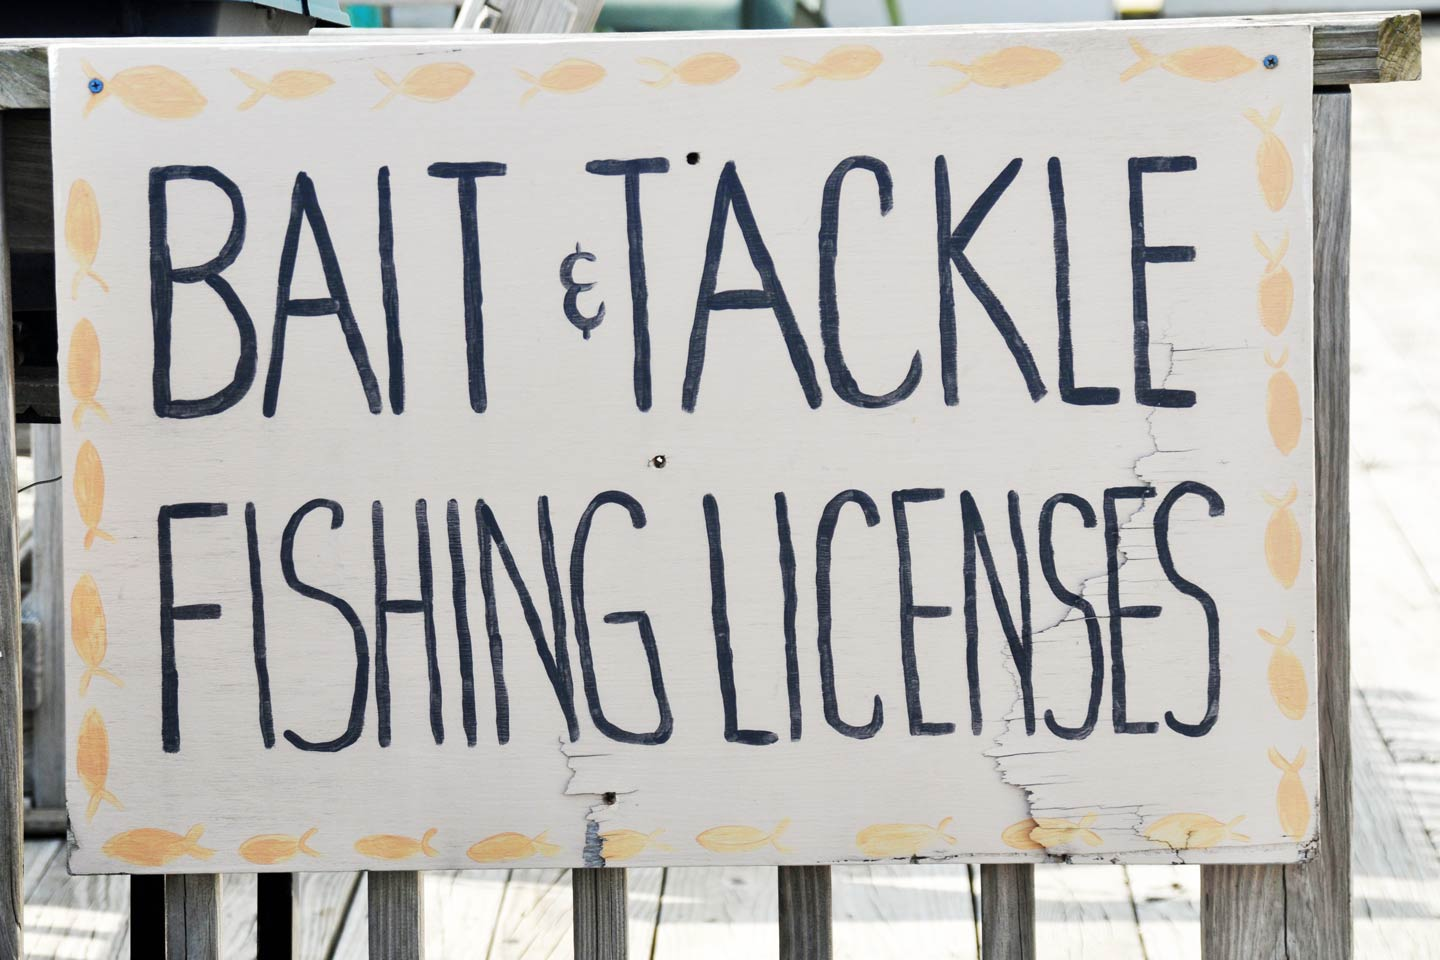 Signage signalling the sale of bait, tackle, and fishing licenses.